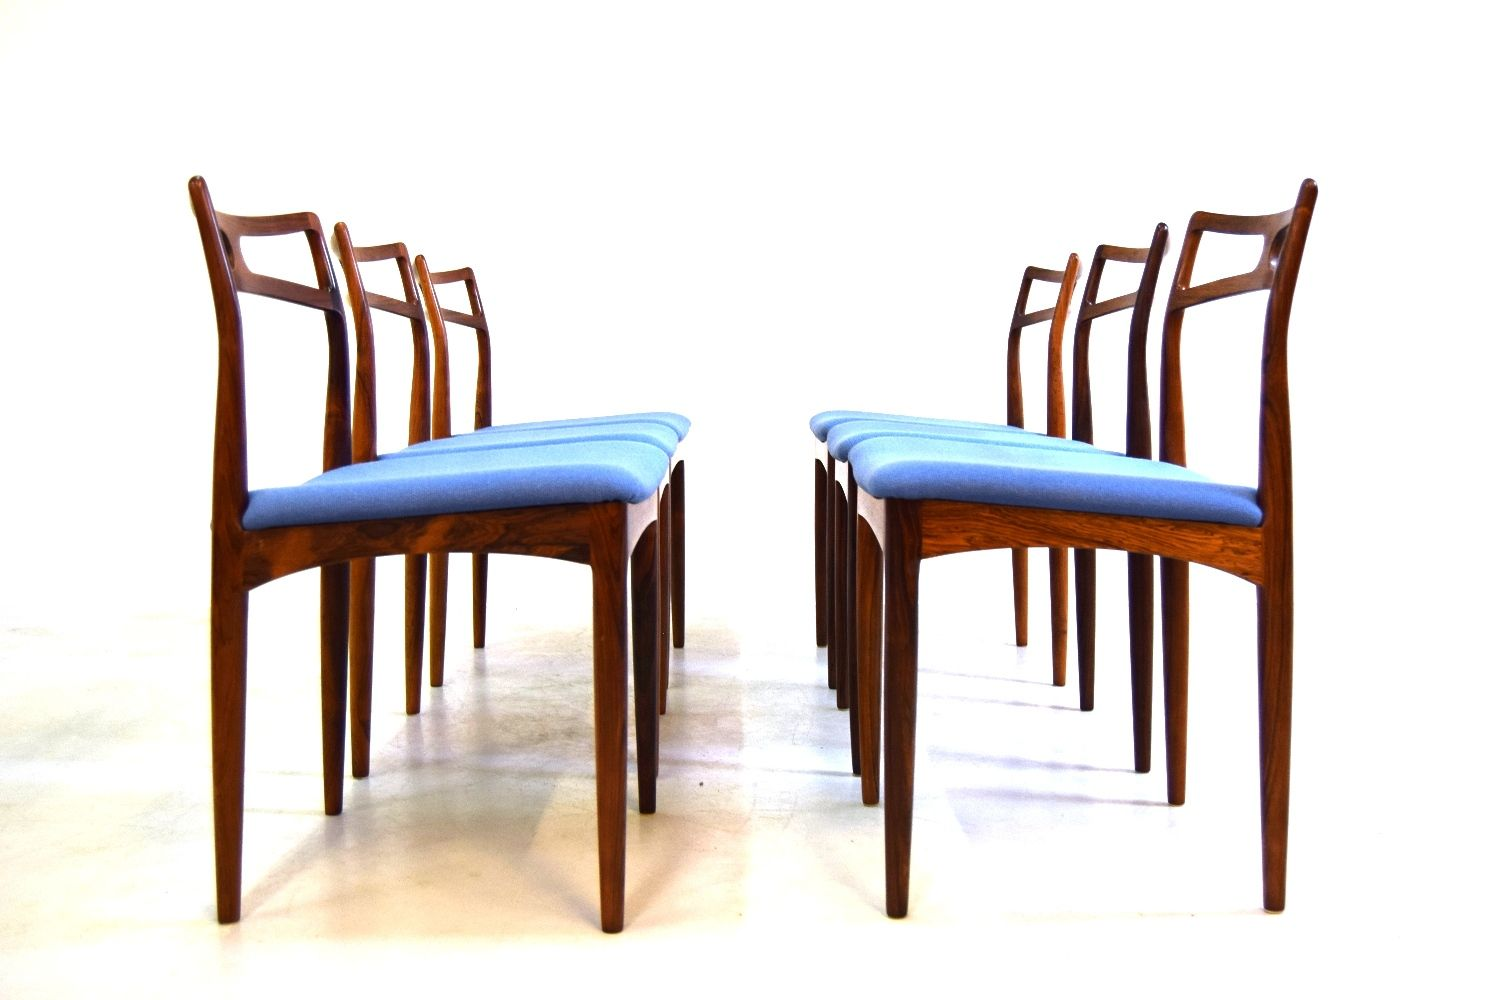 Vintage Dining Chairs By Johannes Andersen For Chr Linneberg For Sale At Pamono